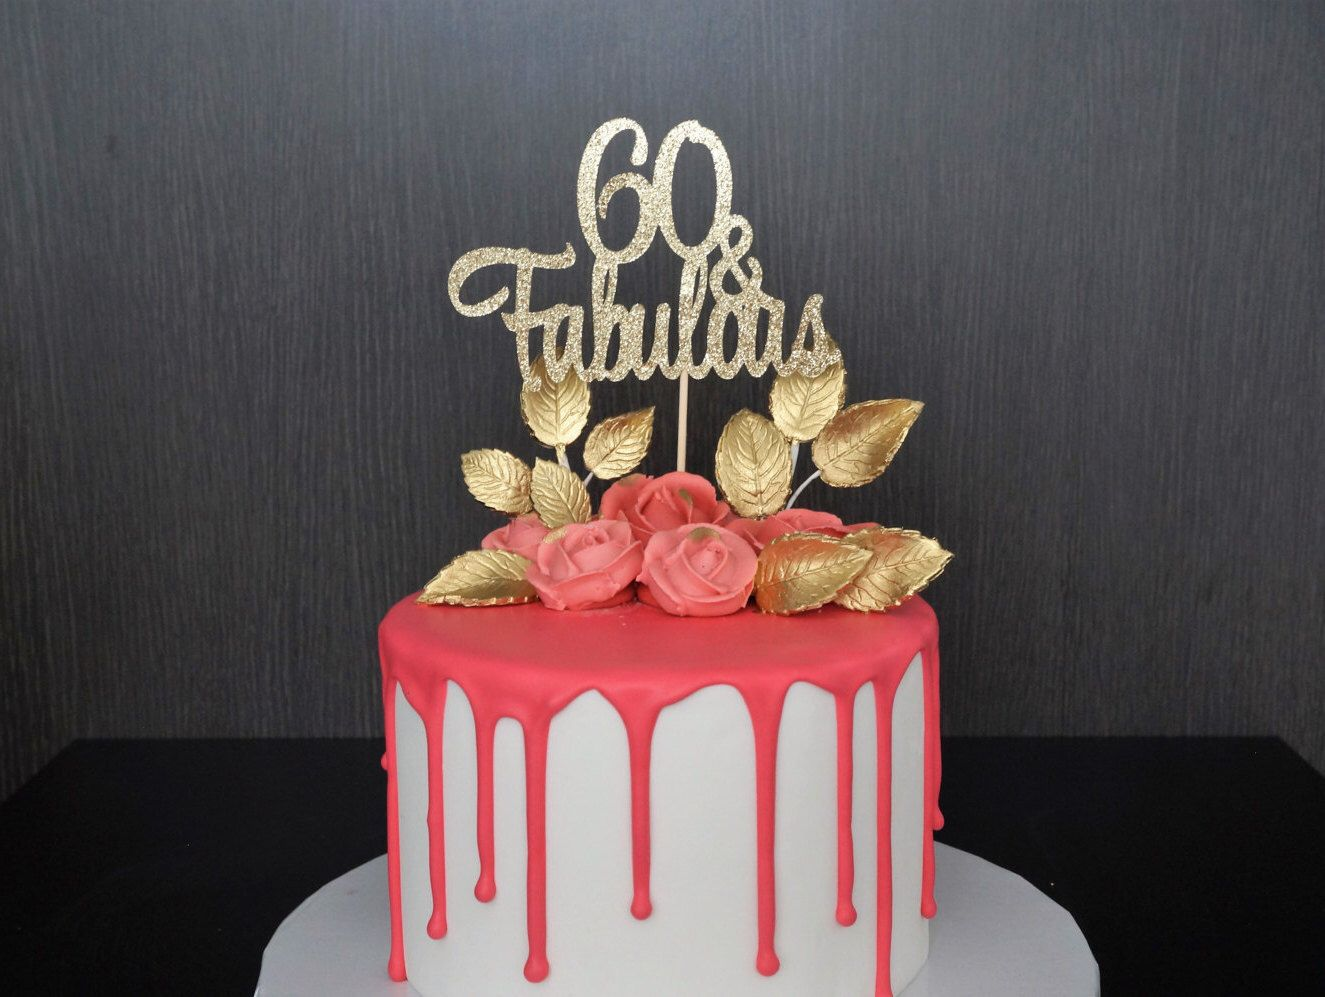 Incredible 60 And Fabulous Cake Topper Birthday Cake Topper Happy 60Th Funny Birthday Cards Online Bapapcheapnameinfo